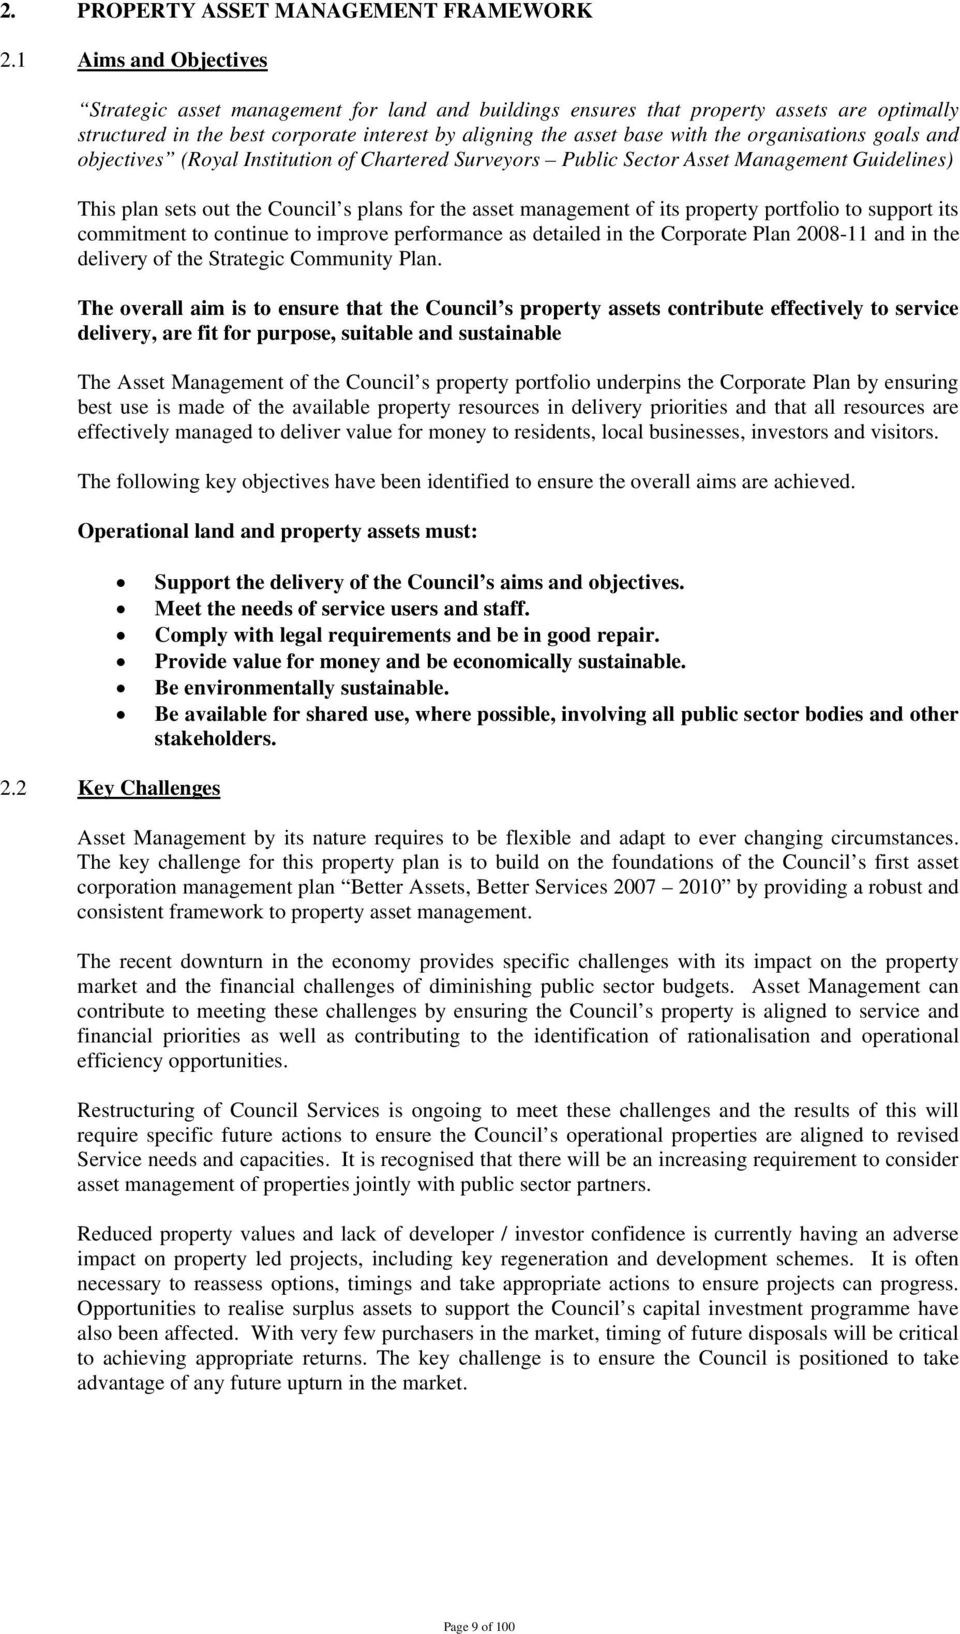 organisations goals and objectives (Royal Institution of Chartered Surveyors Public Sector Asset Management Guidelines) This plan sets out the Council s plans for the asset management of its property